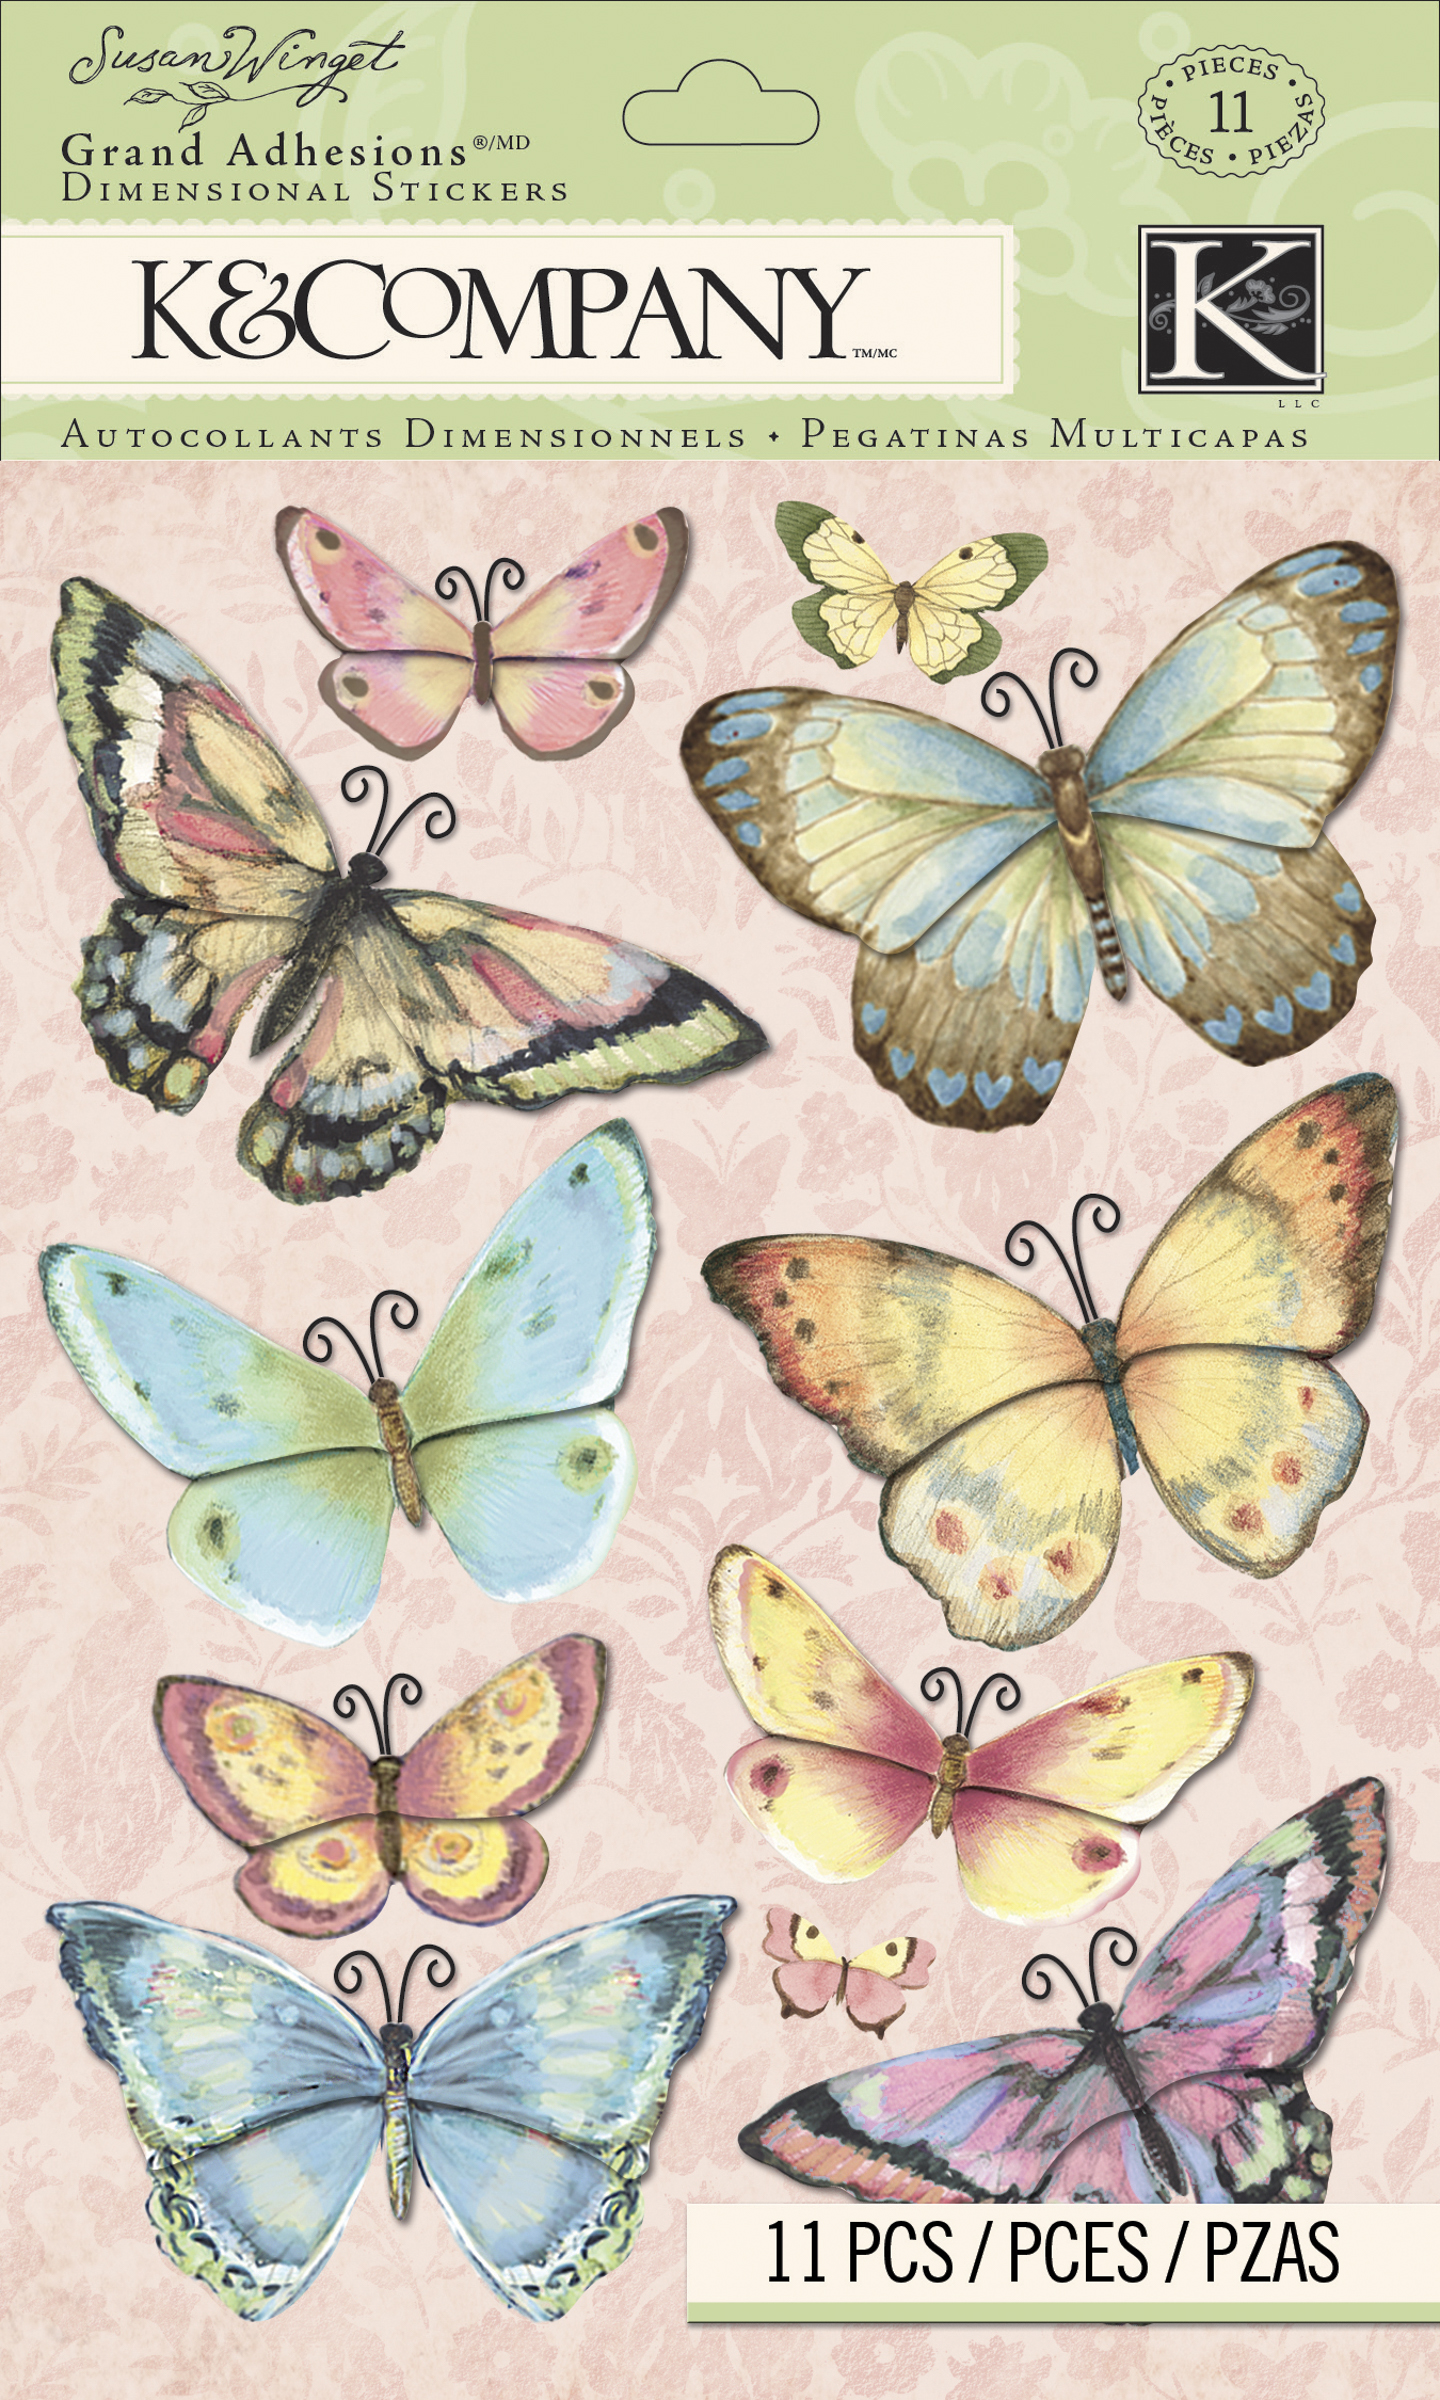 Darice K&Company Floral Butterfly Grand Adhesions Sticker by Susan Winget